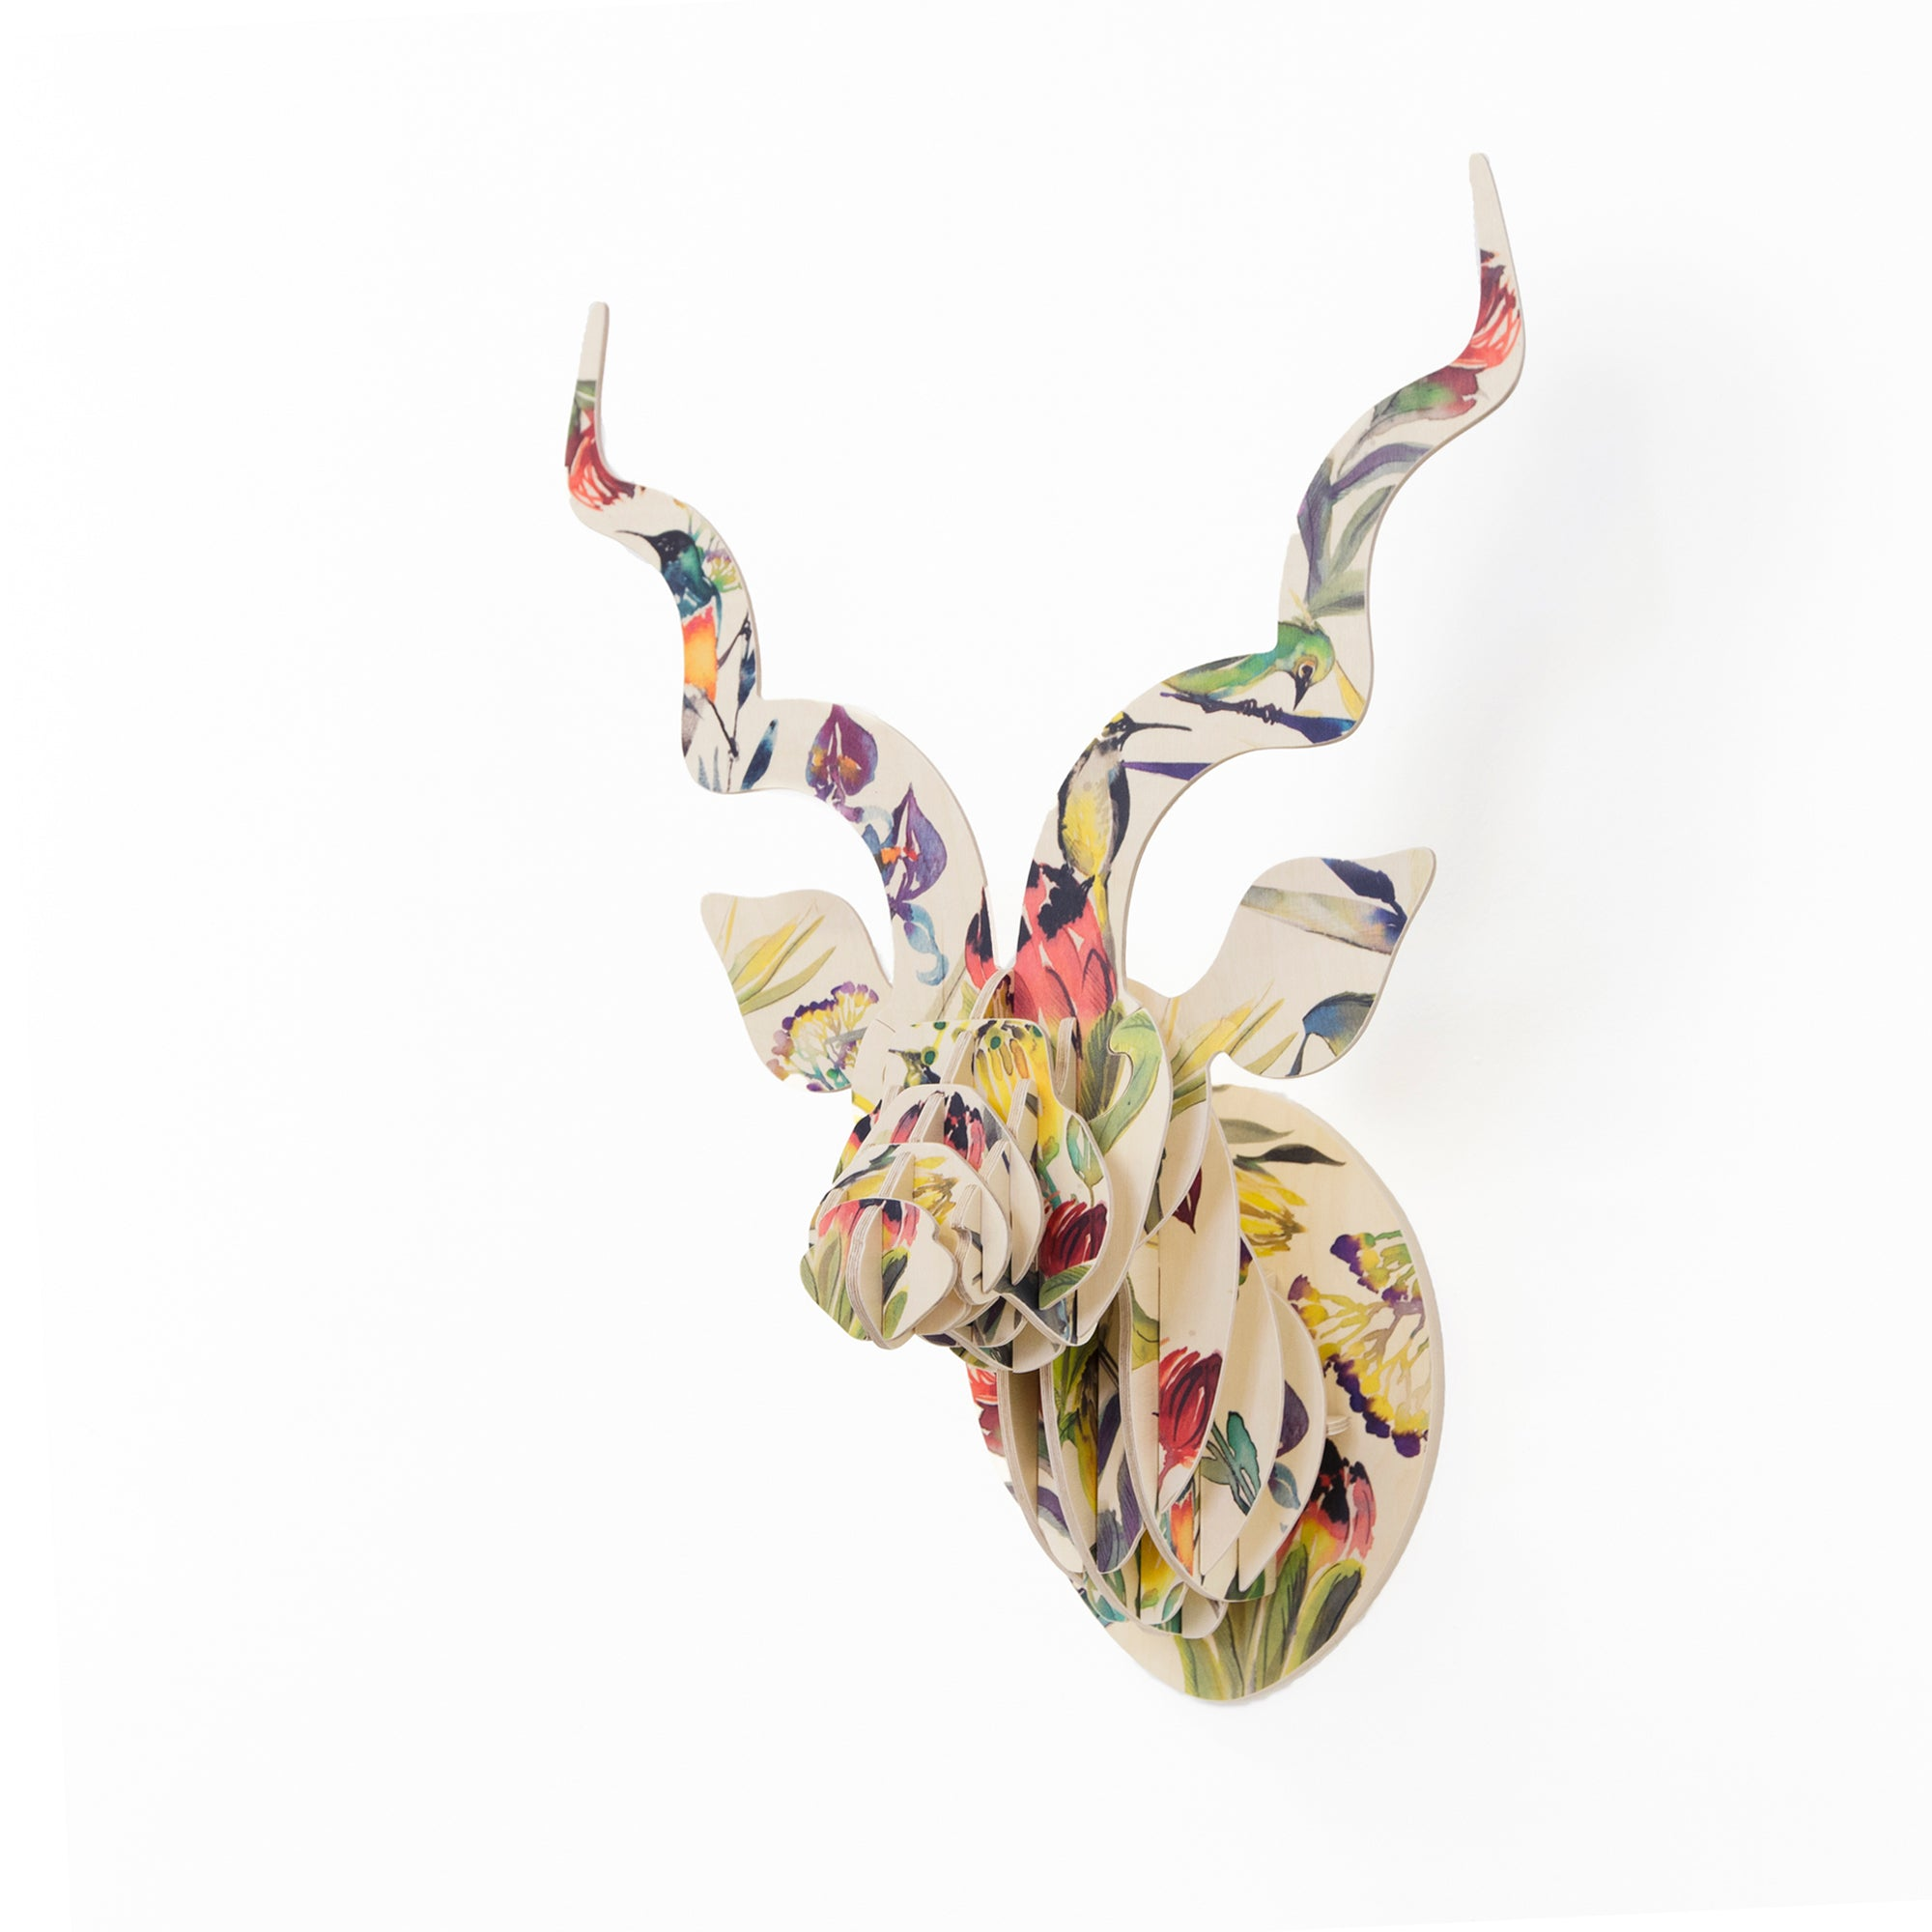 KUDU with Artist Print - Fynbos Sugarbirds and Proteas (med)